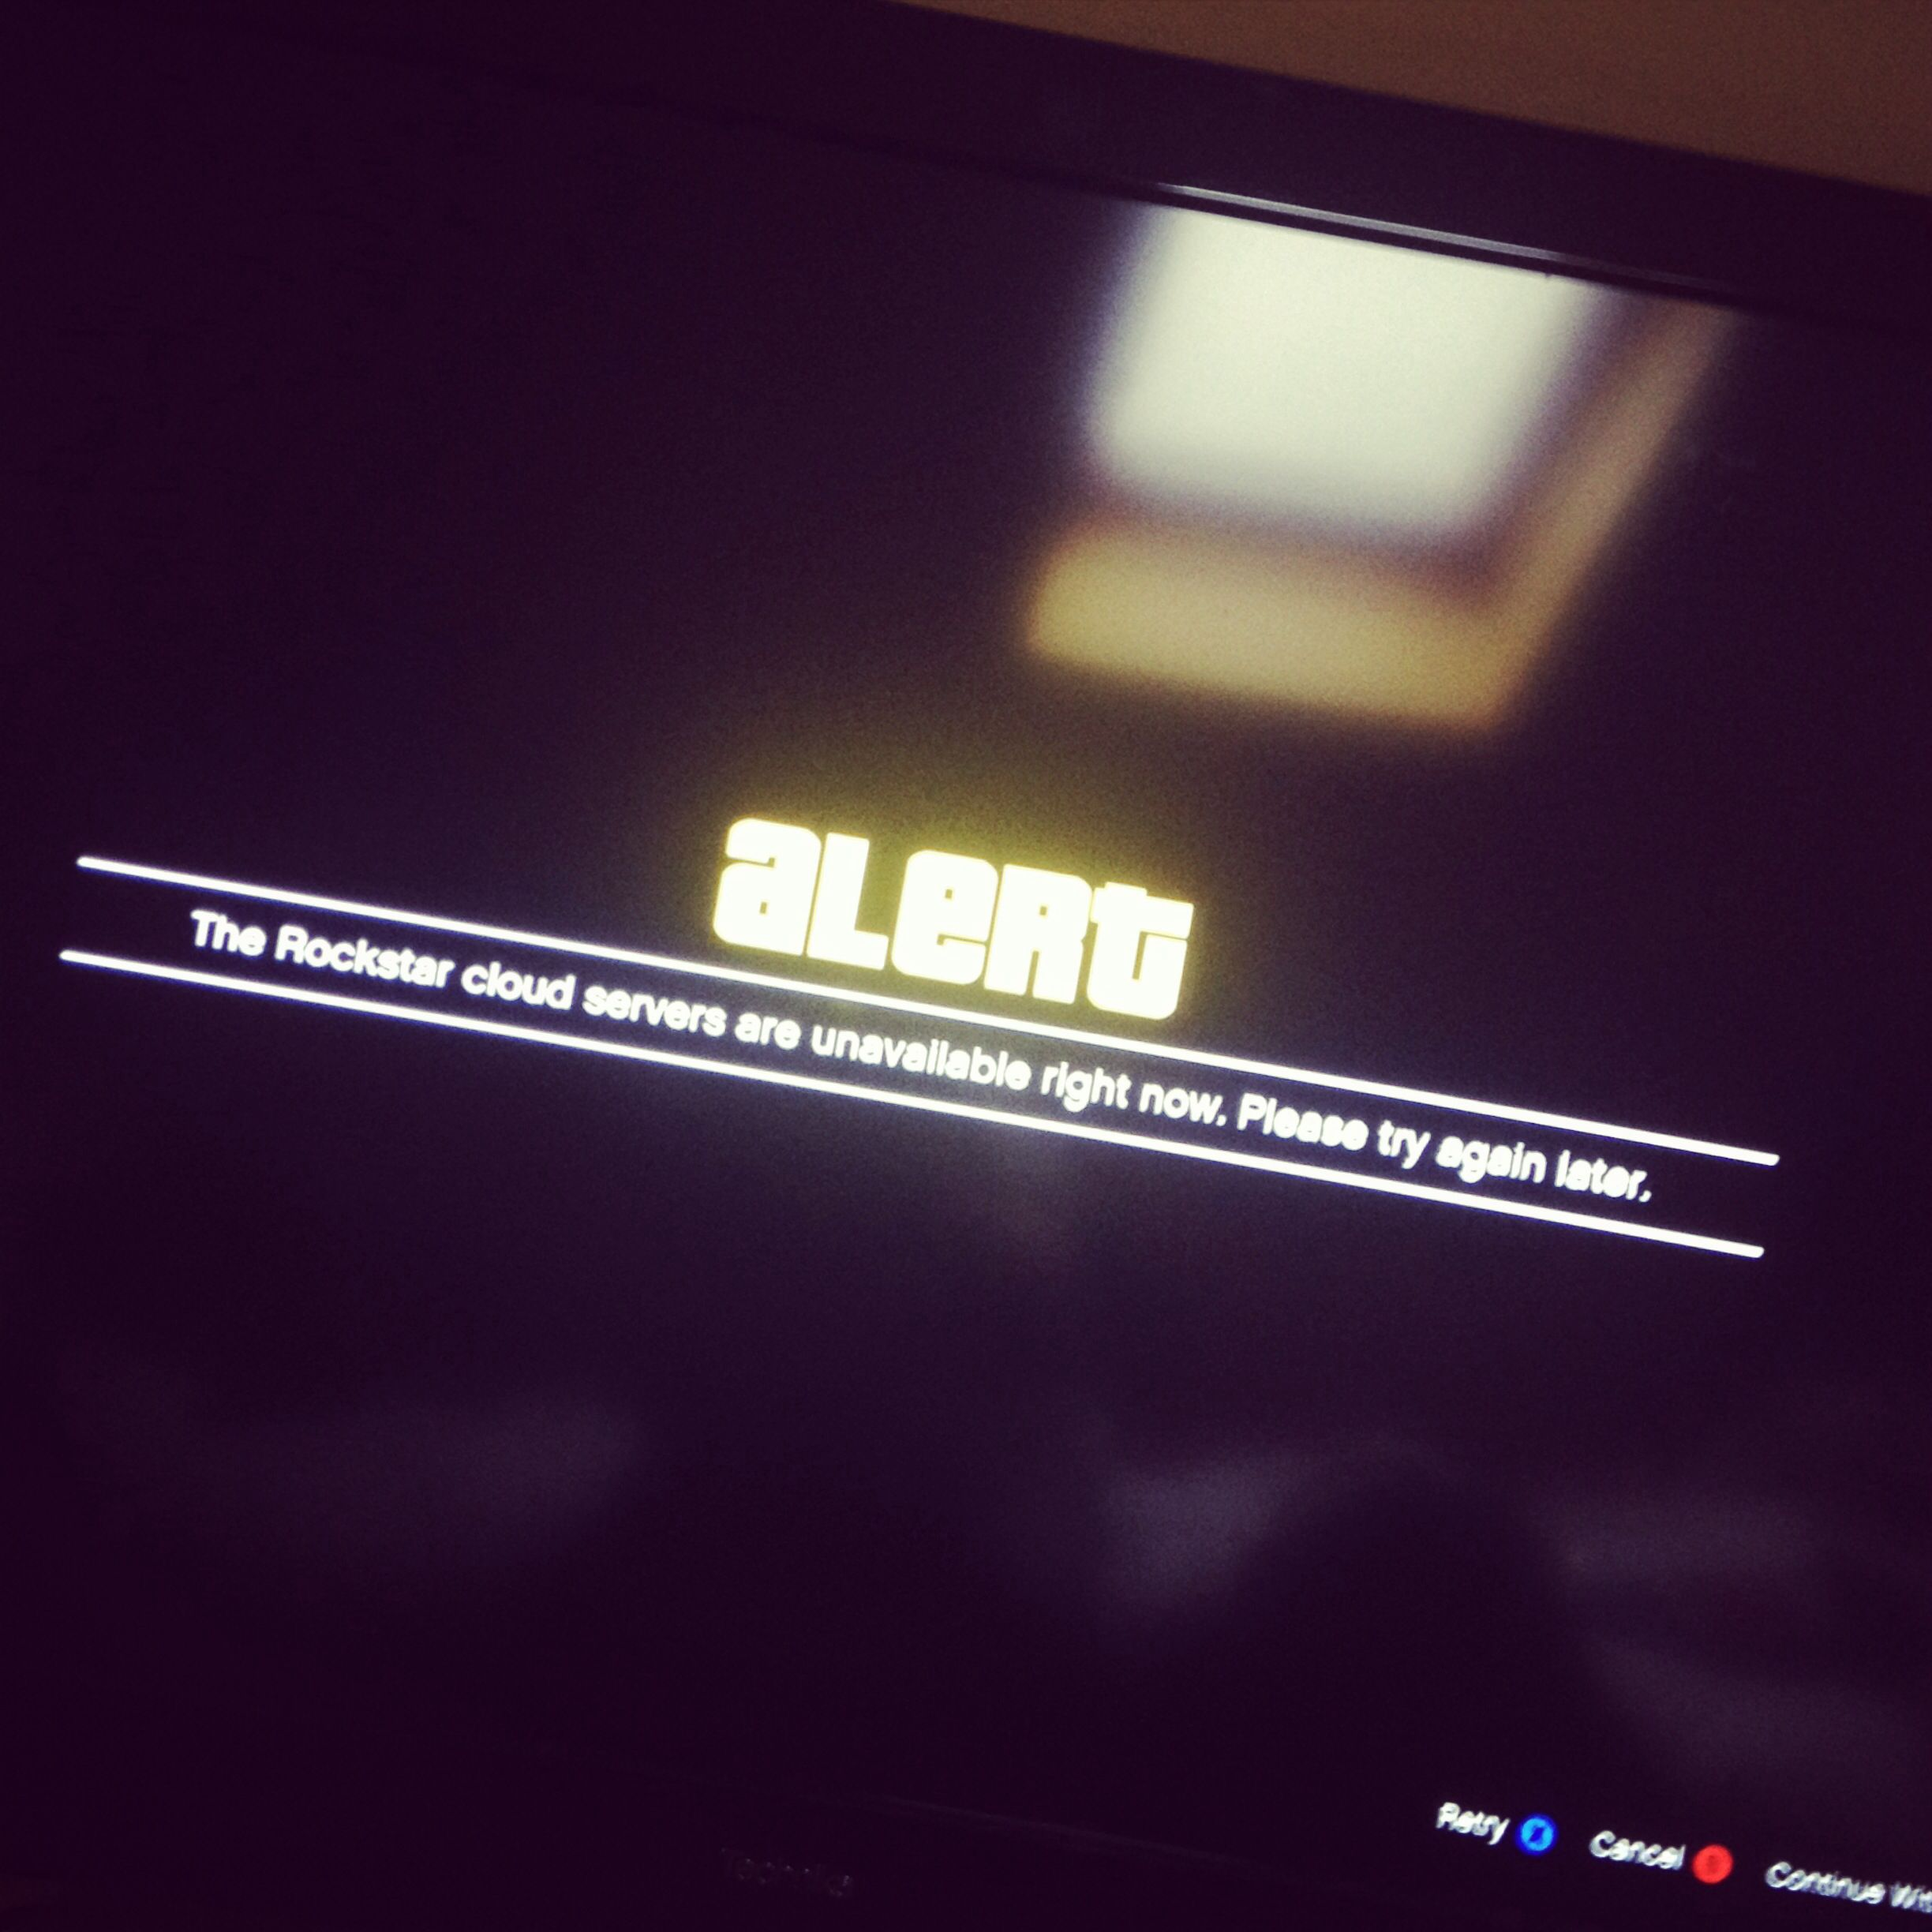 C'mon Rockstar, sort it out! #Rockstar #games #gaming #GTA #gta5 #gtaonline #XBOX #PS3 #servers